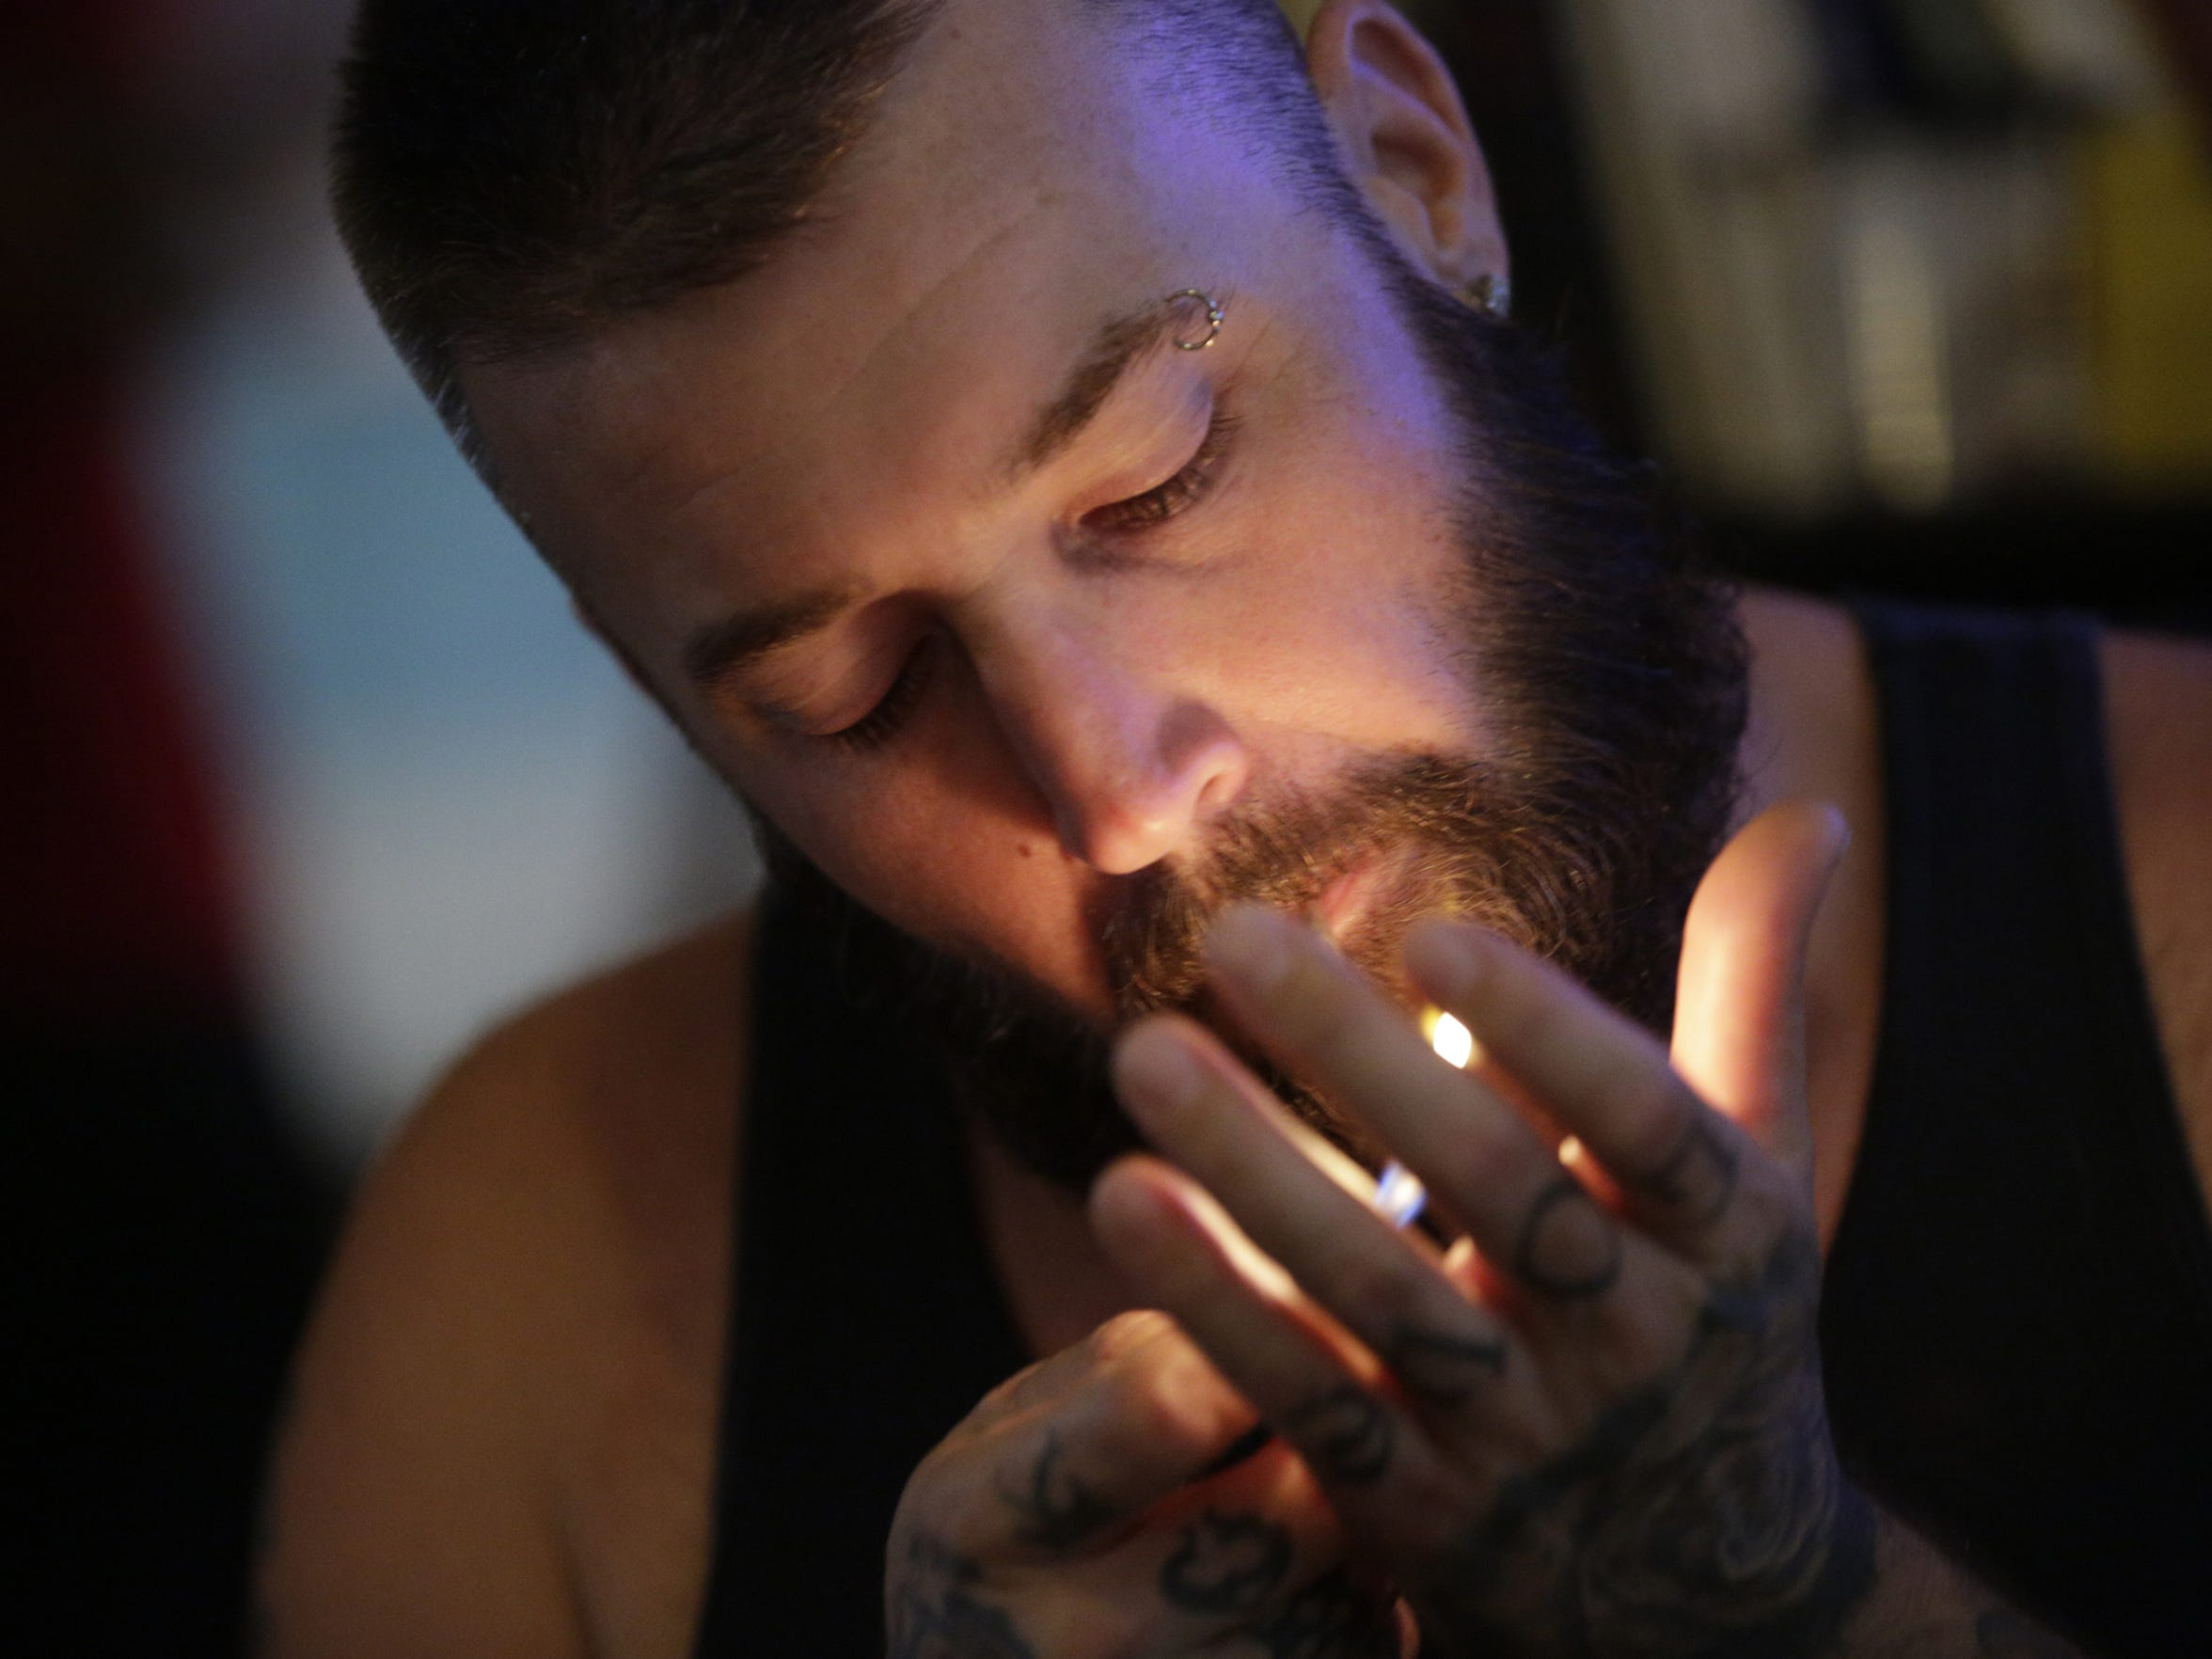 Ryan, 38 of Phoenix Ariz., who is on his honeymoon, lights up during 4:20 Happy Hour at the Adagio Bud and Breakfast.